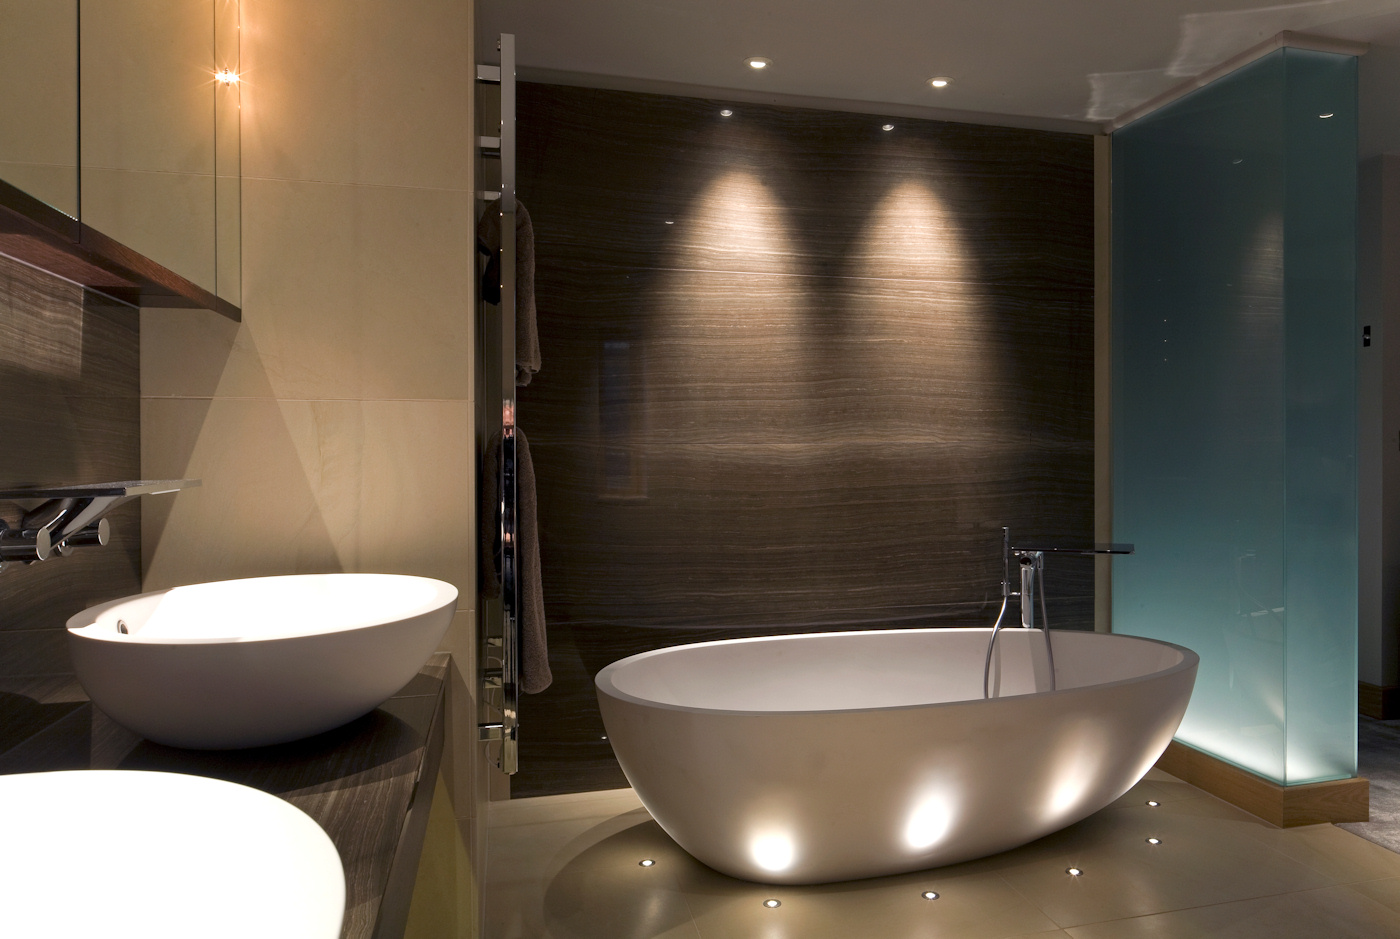 Bathroom Led Lights The Great Advantages Of Led Bathroom Lighting Bathroom Ideas White And Orange Combination Lamps Design